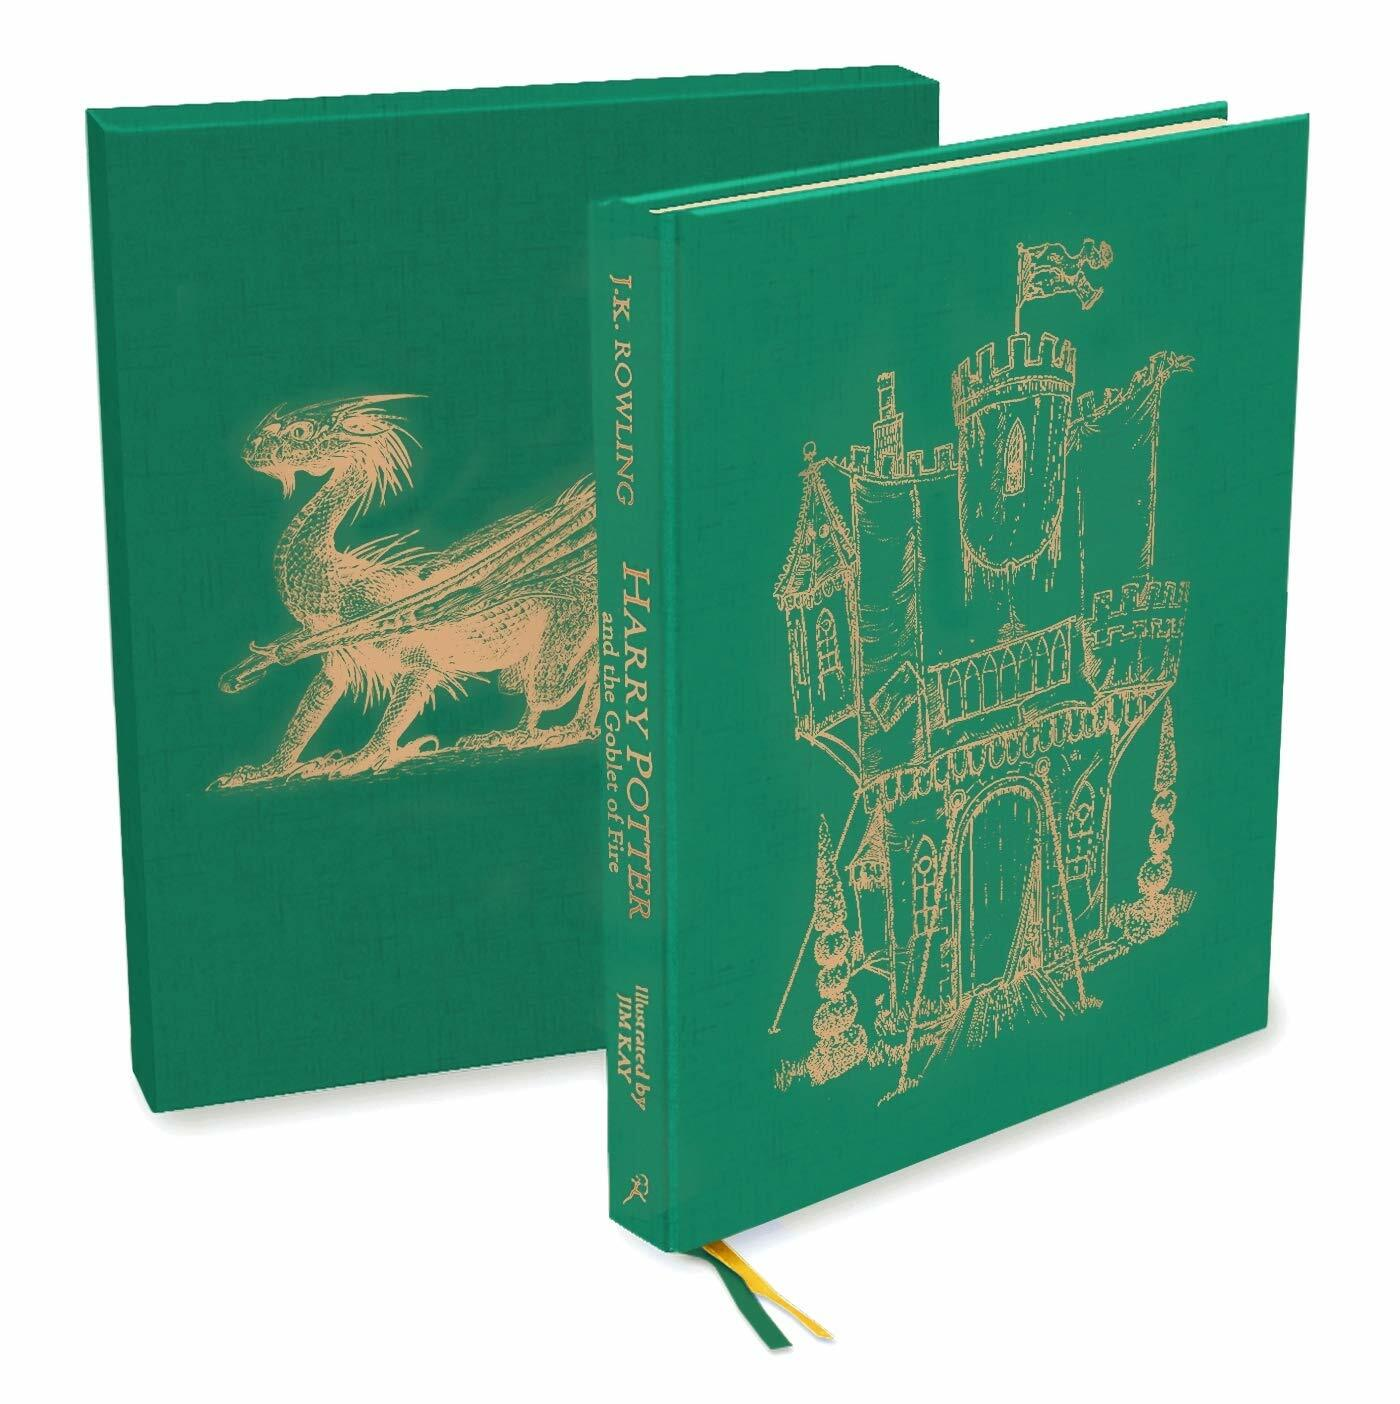 Harry Potter and the Goblet of Fire : Deluxe Illustrated Slipcase Edition (Hardcover)